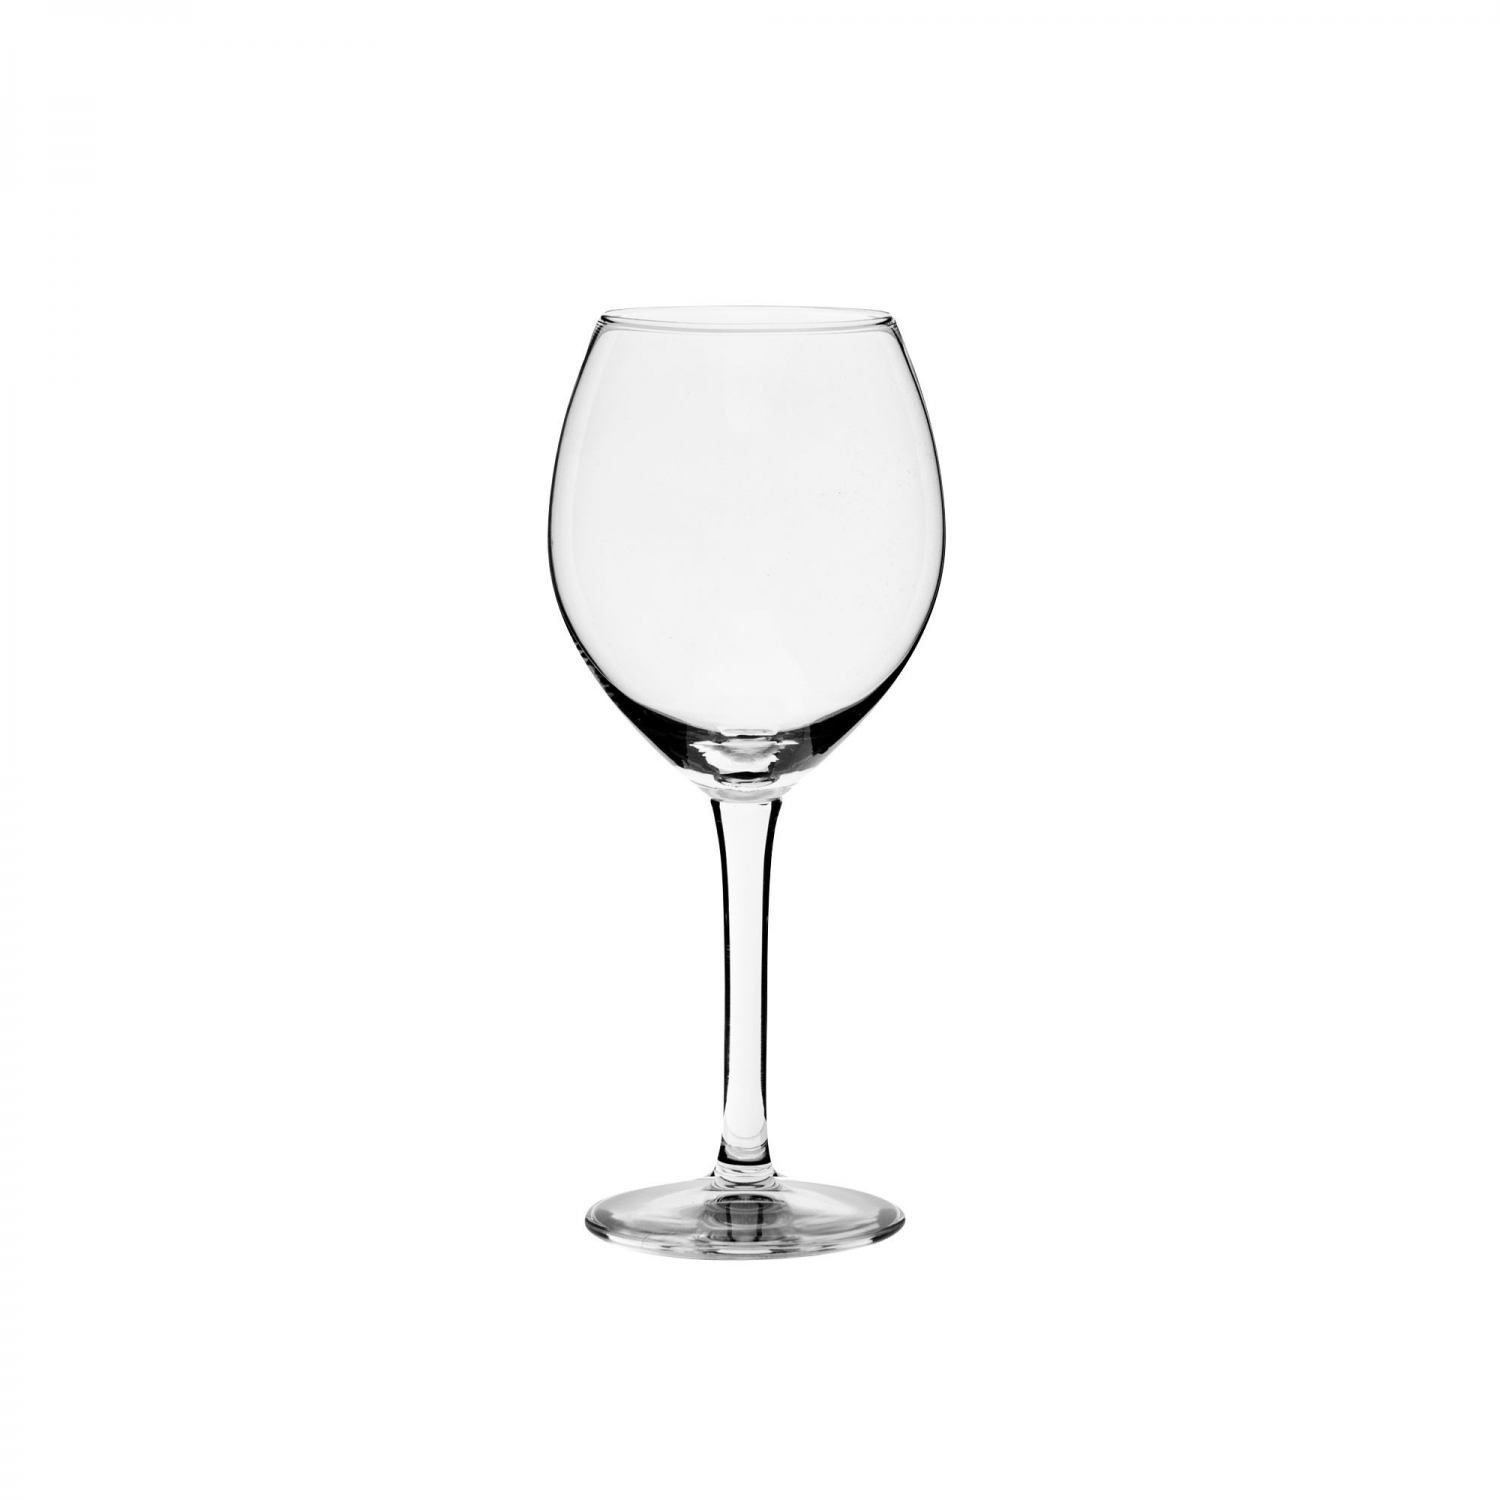 10 Strawberry Street REGINA-WW 11.5 oz. Regina White Wine Glass - 16 pcs